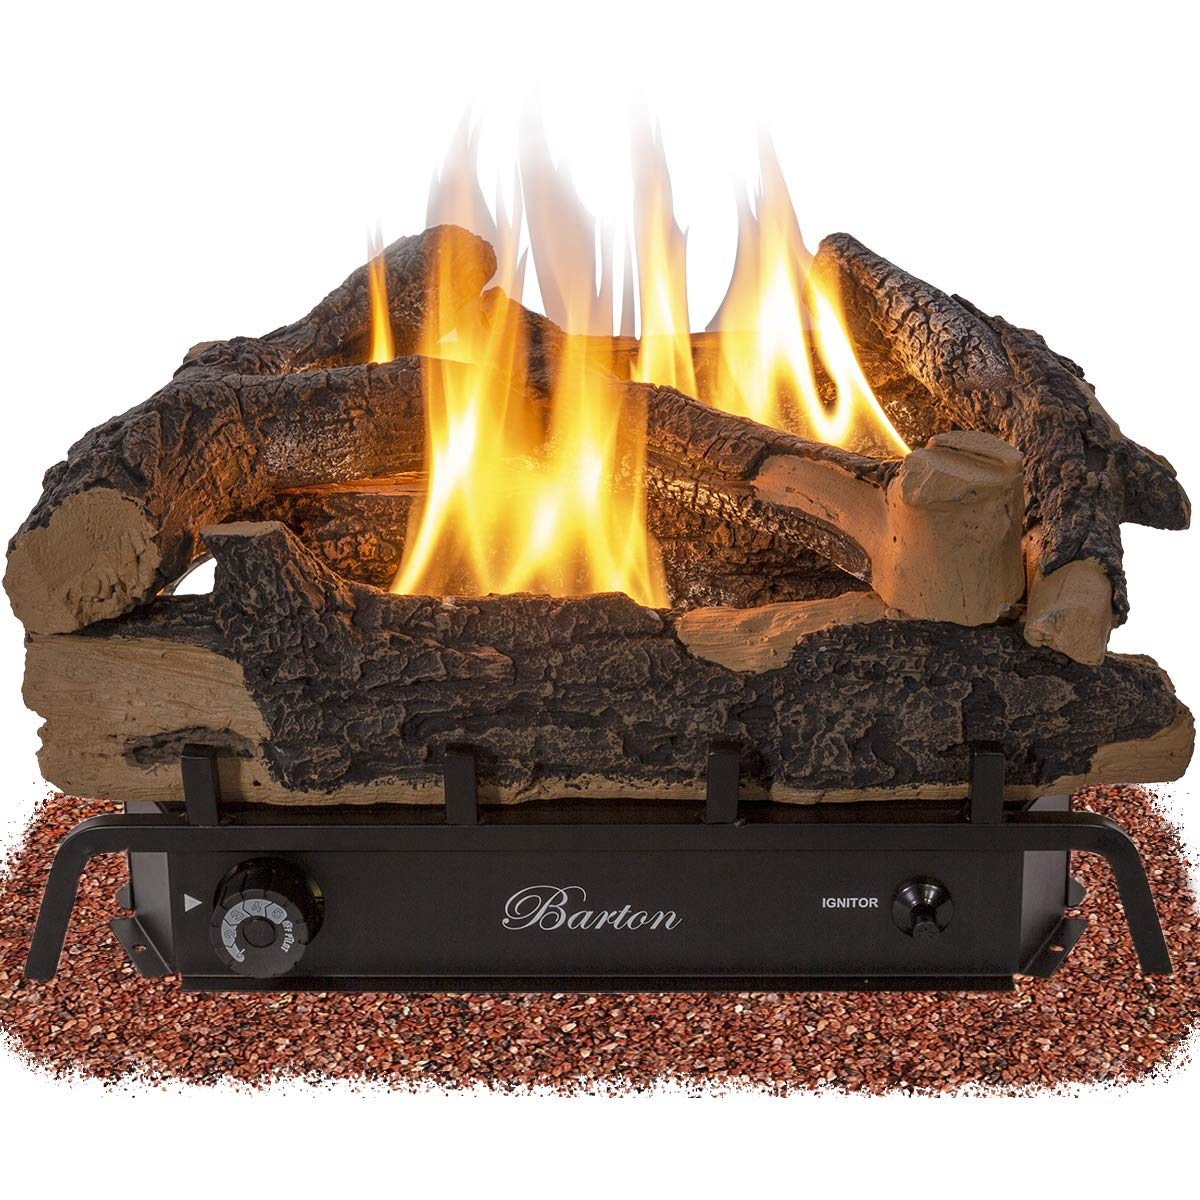 Barton Premium 24-inch Natural Gas Fuel Log Vent-Free Set 32,000 BTU Dual Burner Adjustable Flame Ember ANSI by Barton